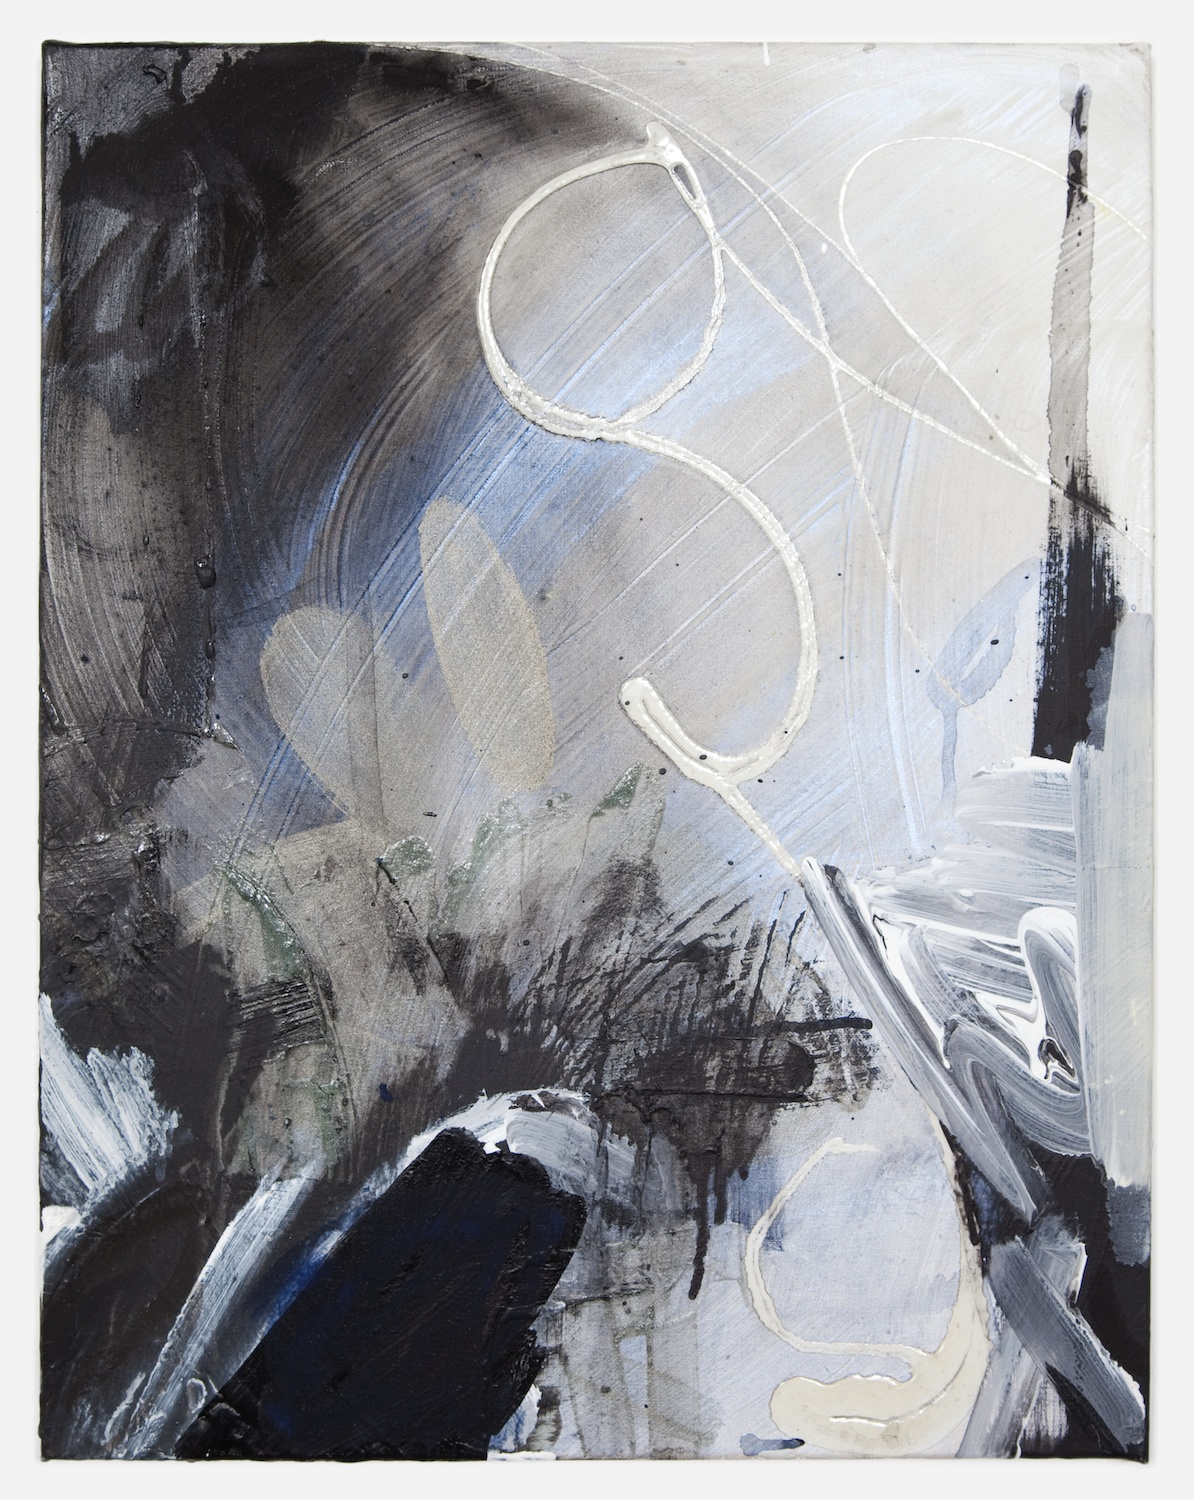 Suzanne McClelland  Black Sigh (#3)  2002 - 2012 Polymer and oil on canvas 20h x 16w in  SM156